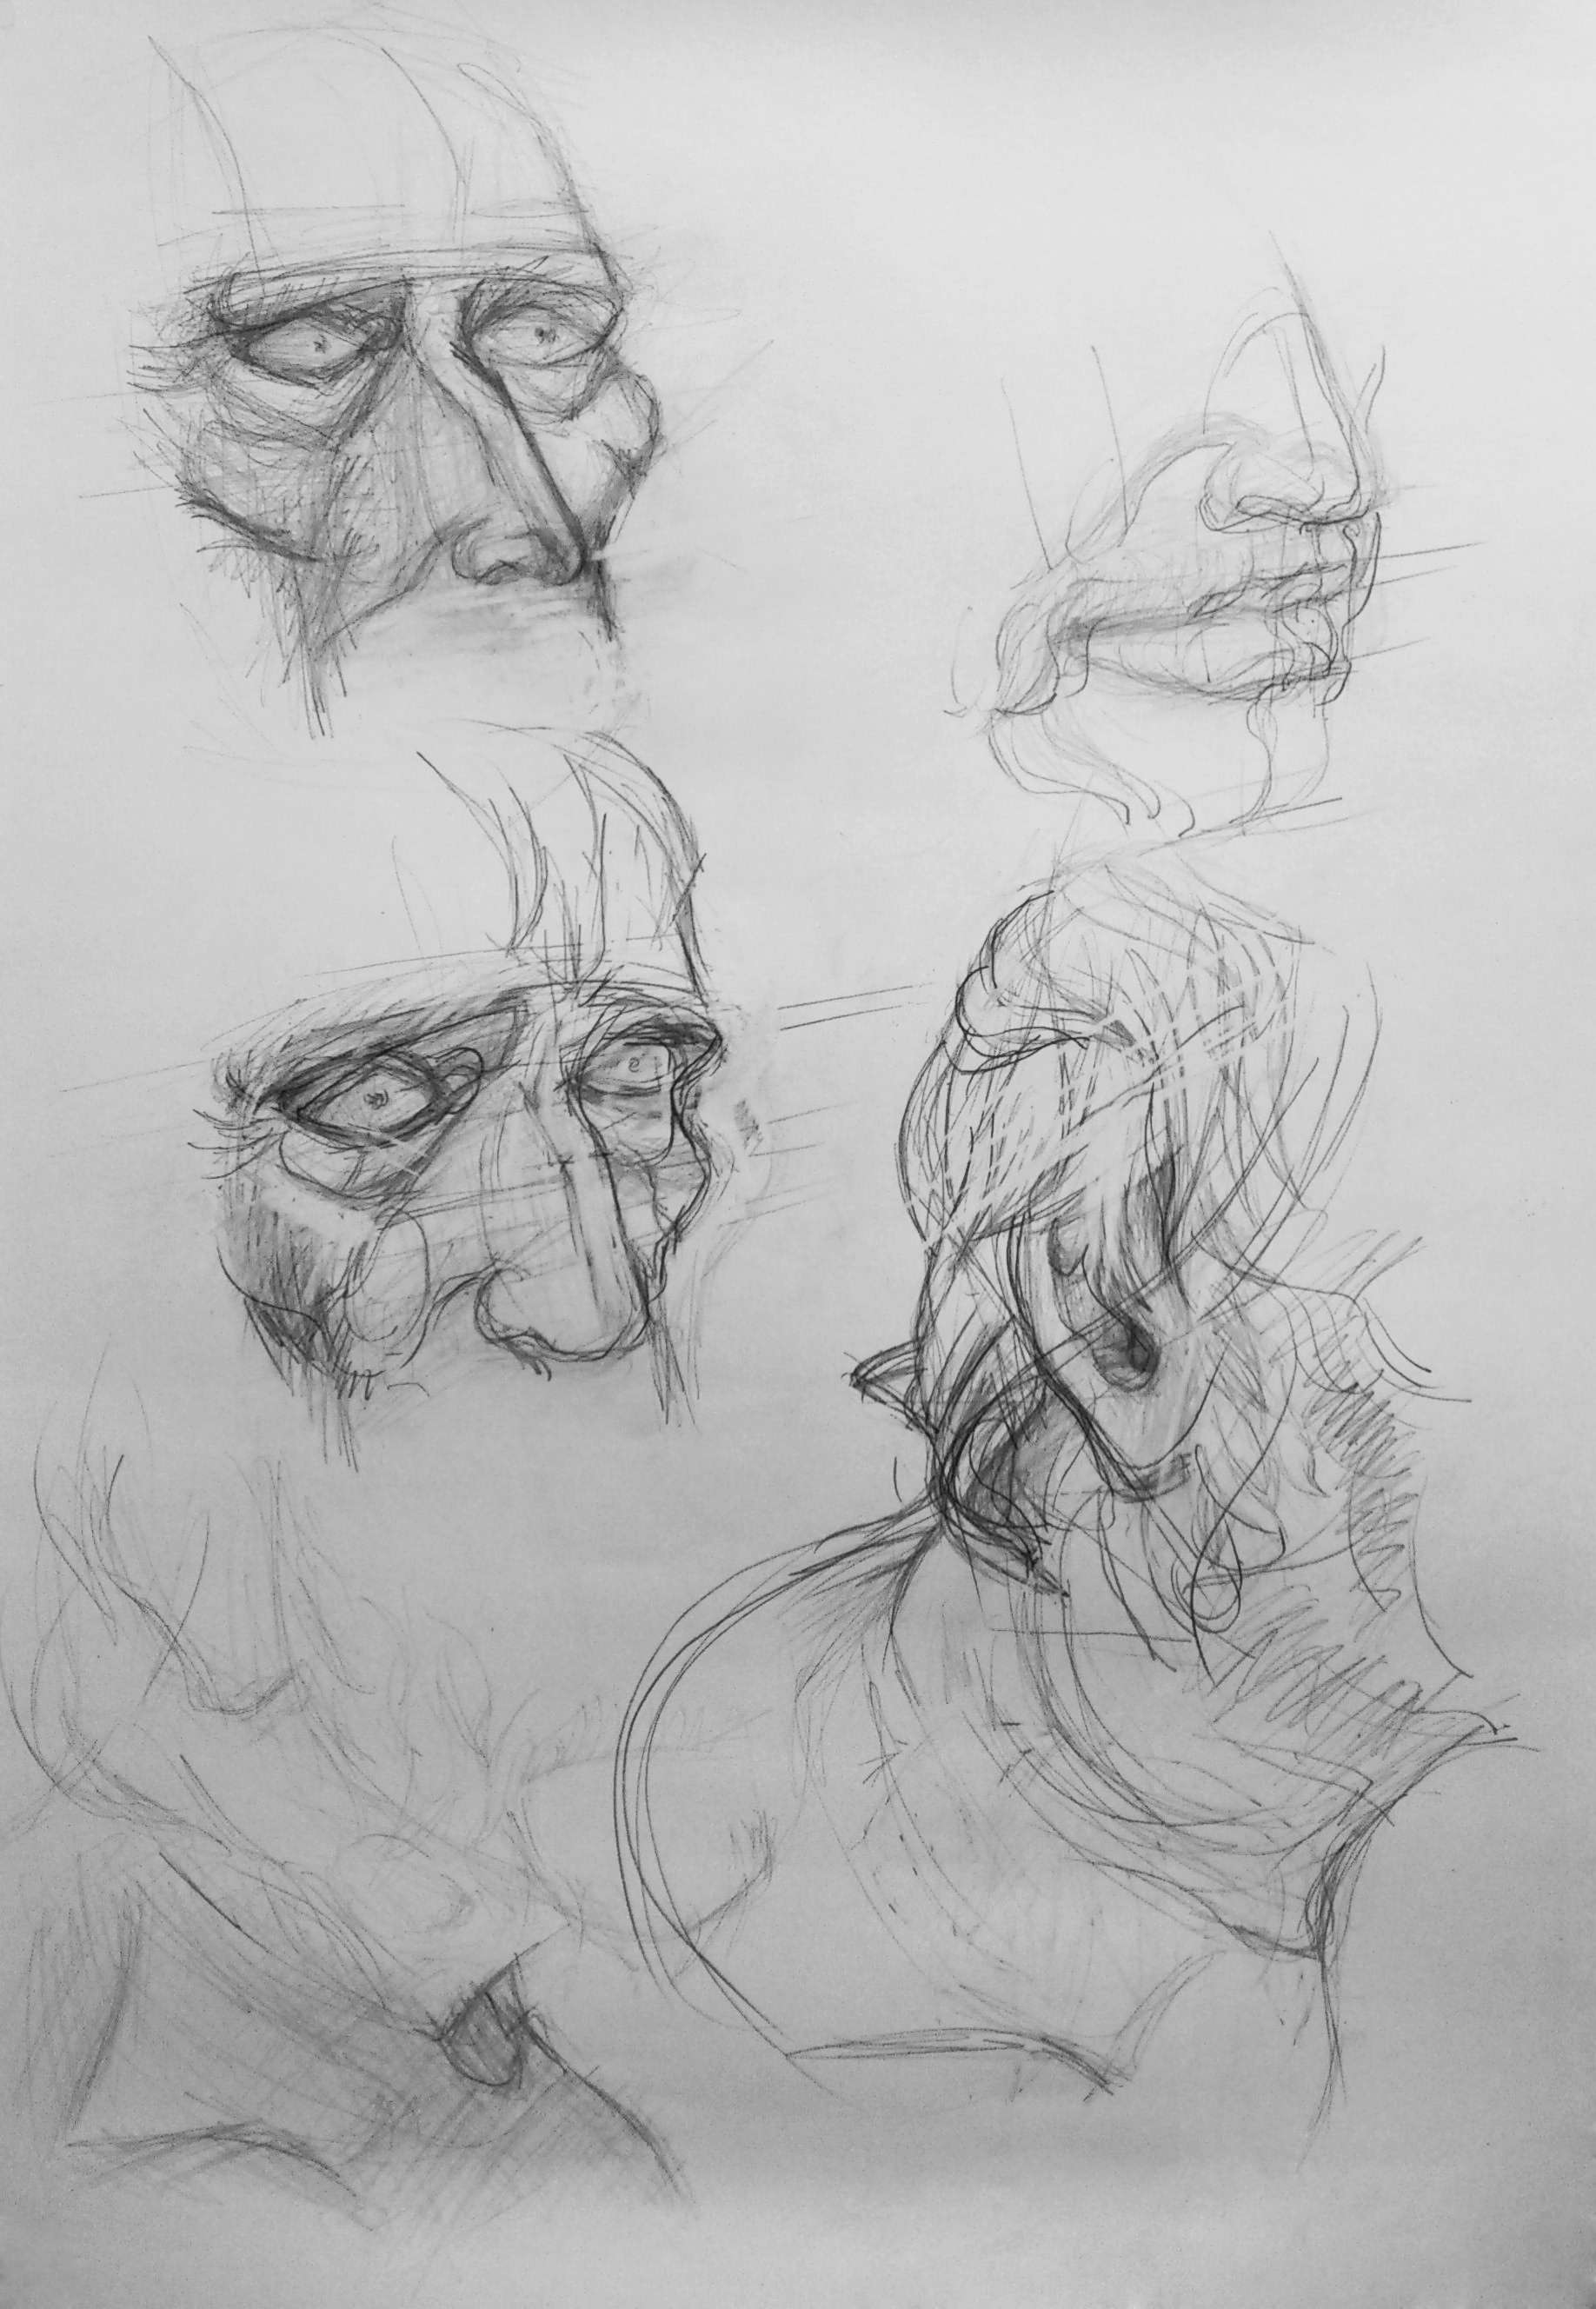 Body parts: face